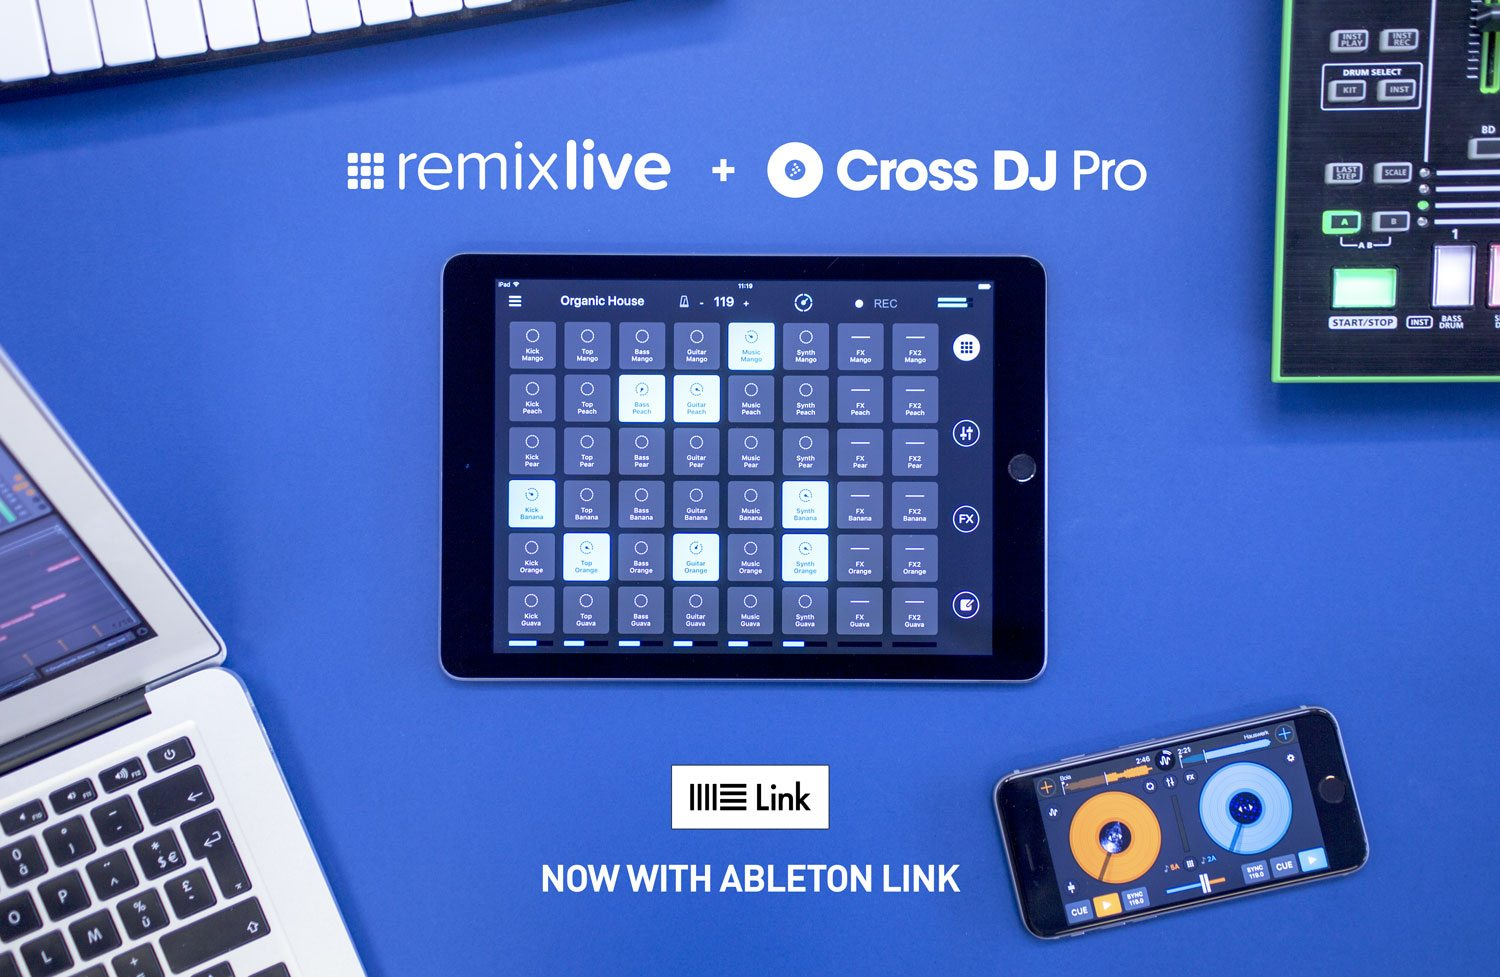 RemixliveCross-DJ-Pro-with-Ableton-Link_Mixvibes